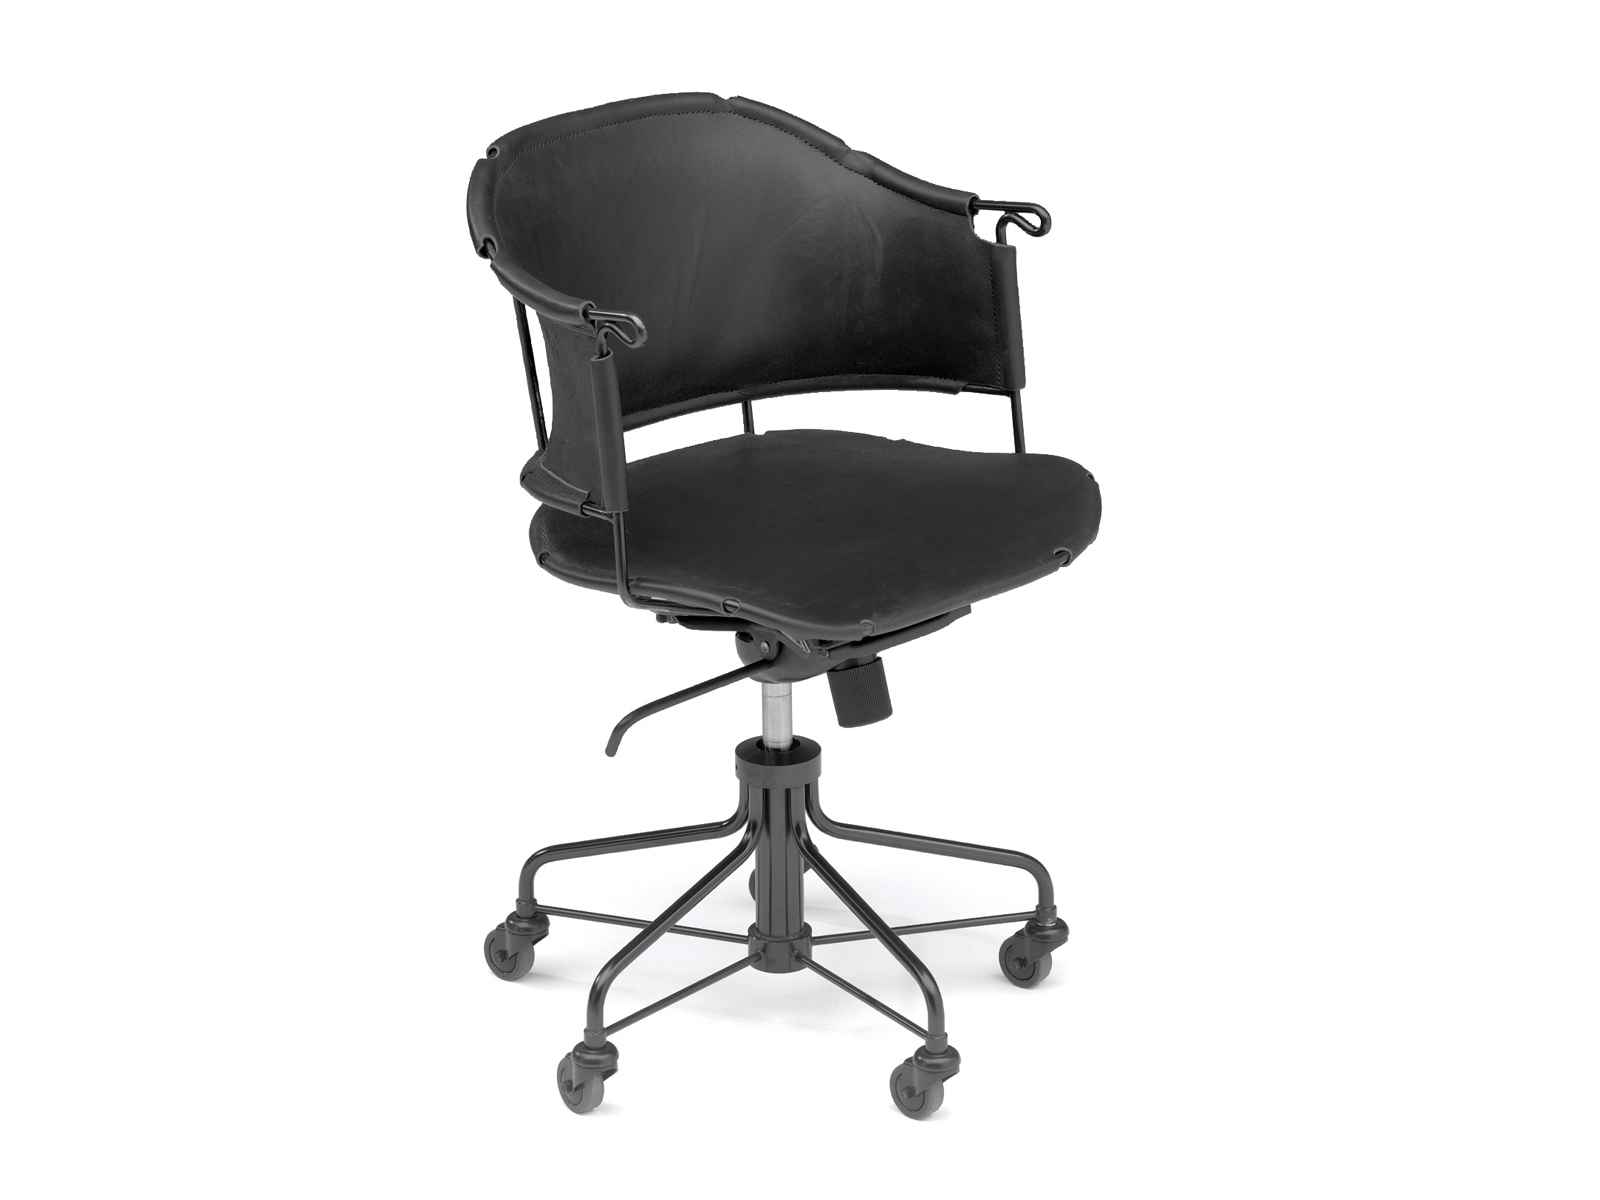 Sheriff Kallemo Black Swivel Chair with 5 Spoke Base